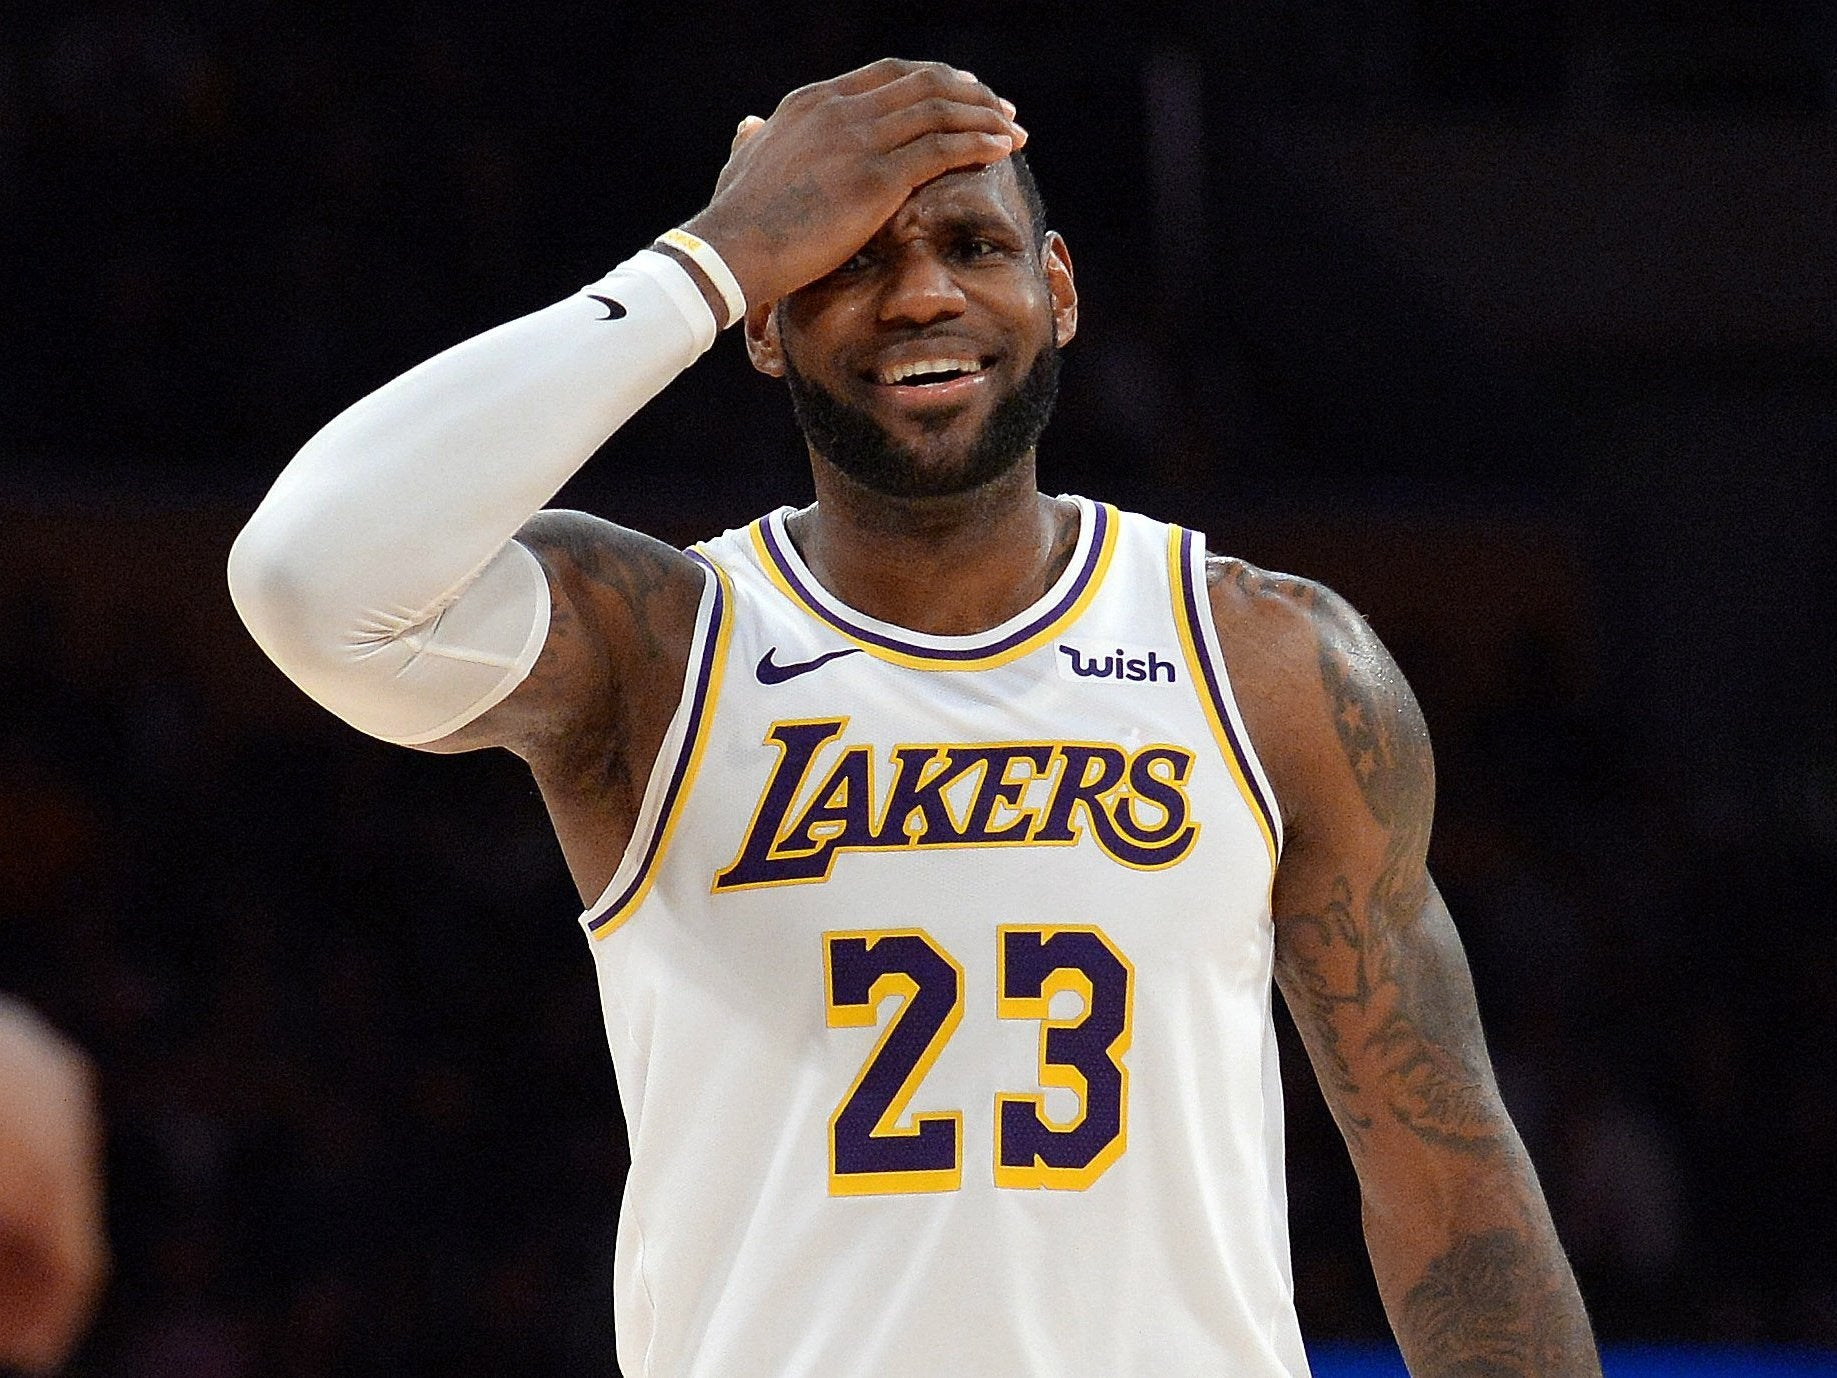 7badaf0490a LeBron James - latest news, breaking stories and comment - The ...